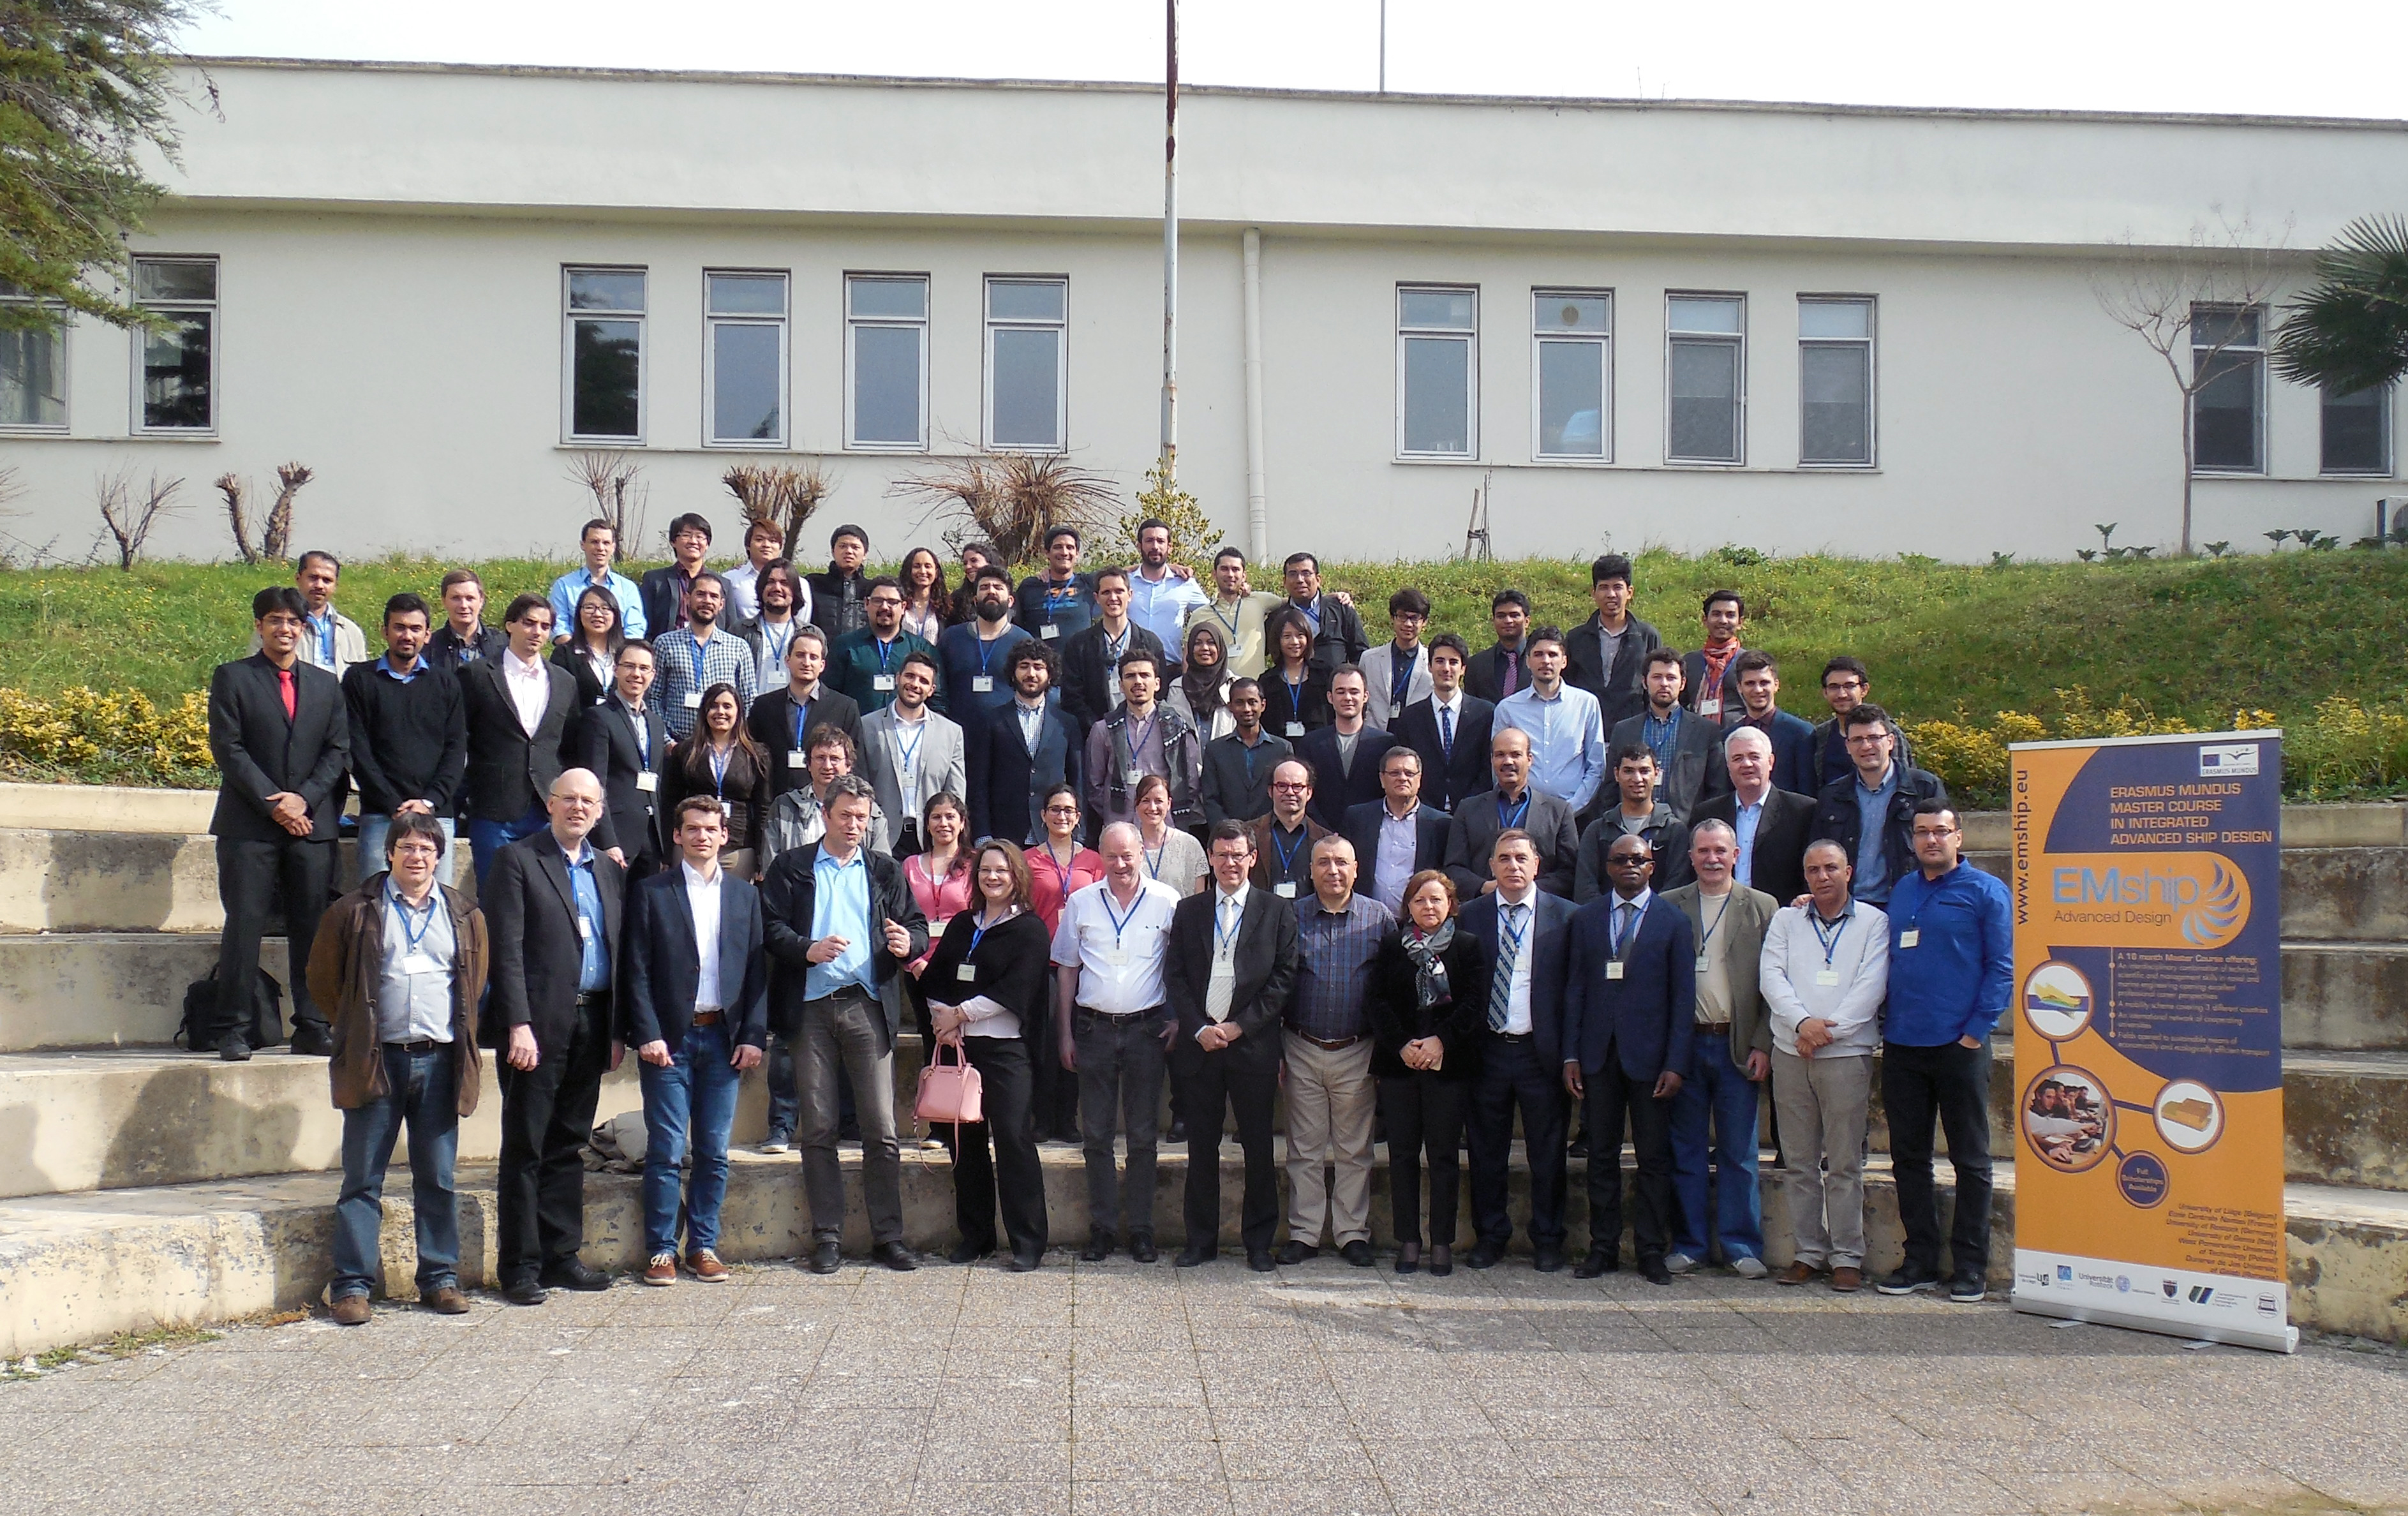 Mr Dragos Totolici, Principal Engineer of Icepronav Engineering (first right) in a group picture at the end of the EMSHIP 2016 SAB meeting.